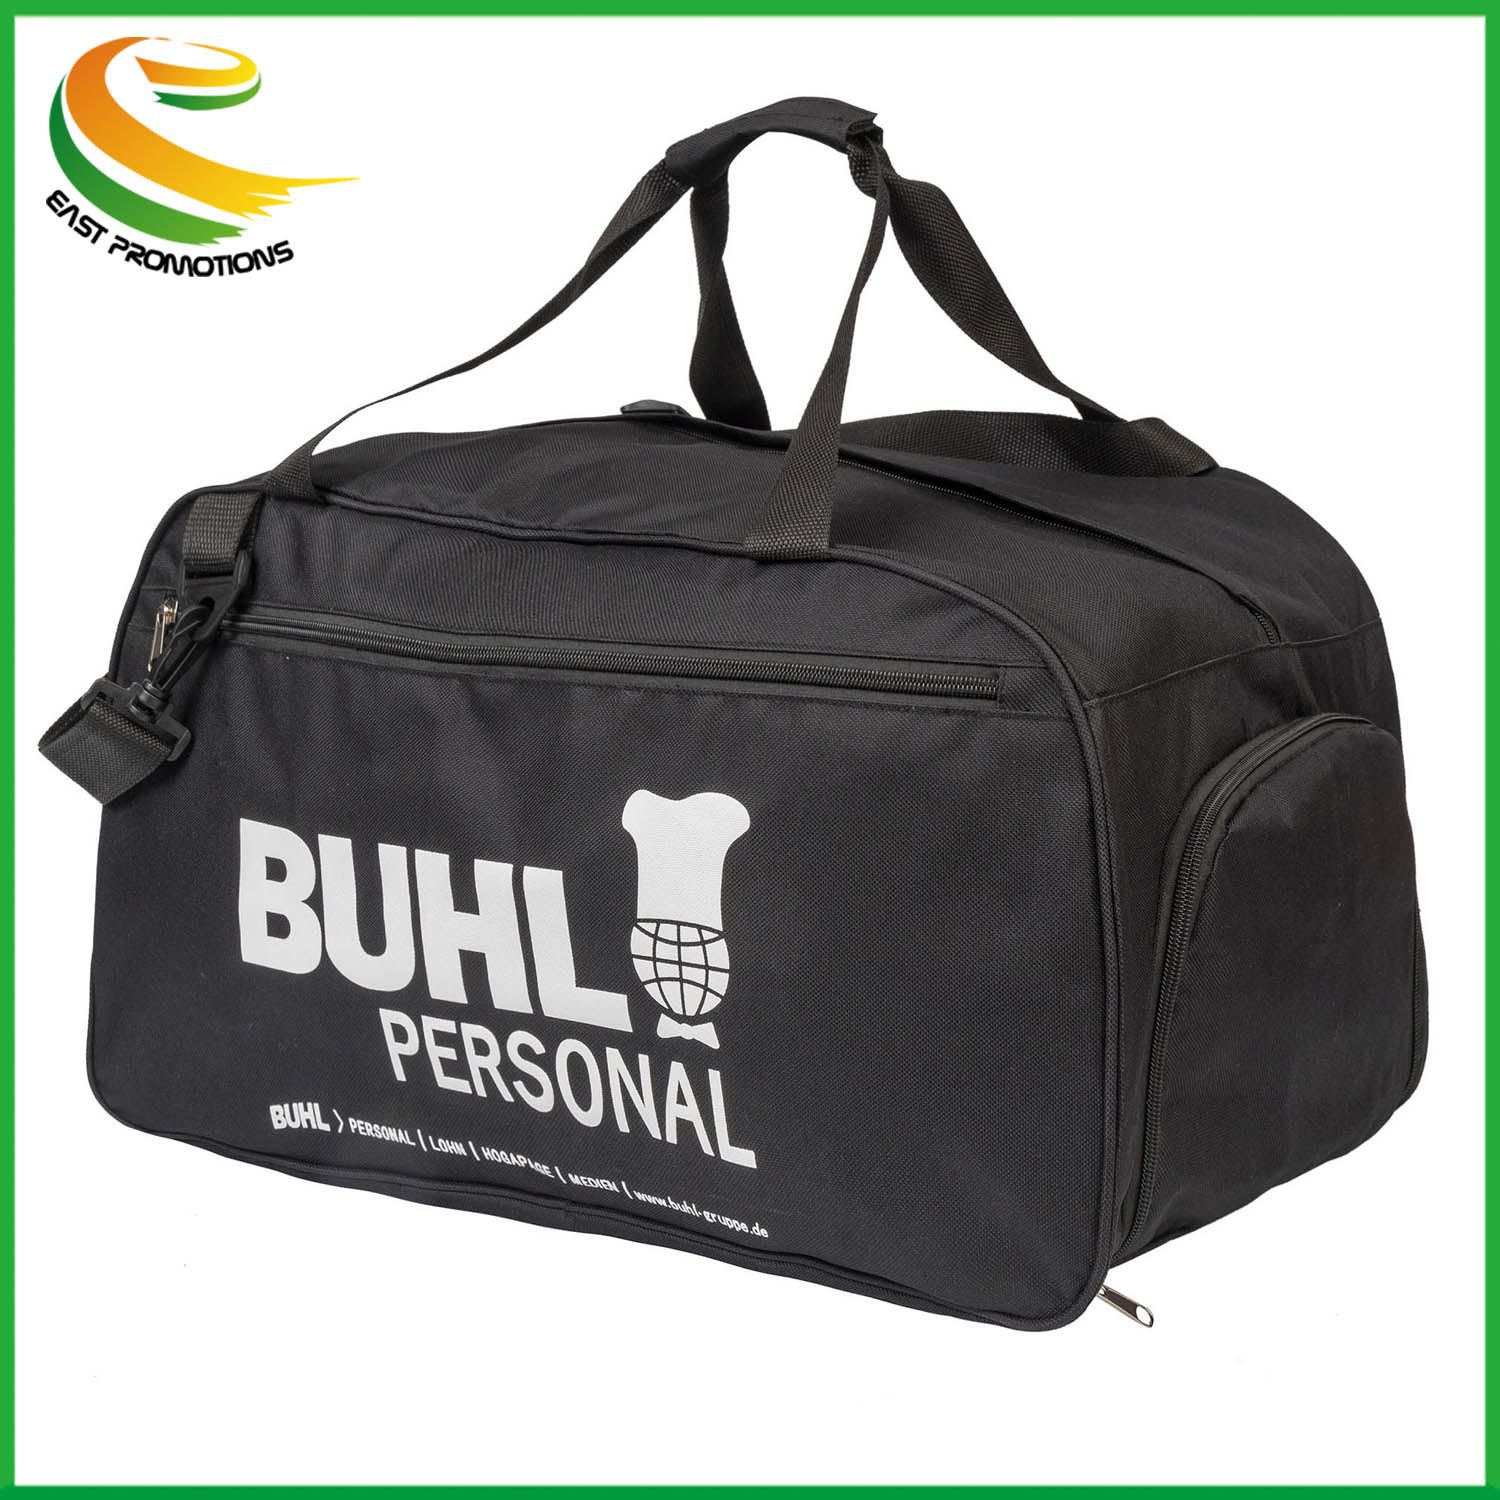 8989d4274 China Luggage Bag, Luggage Bag Manufacturers, Suppliers, Price   Made-in- China.com